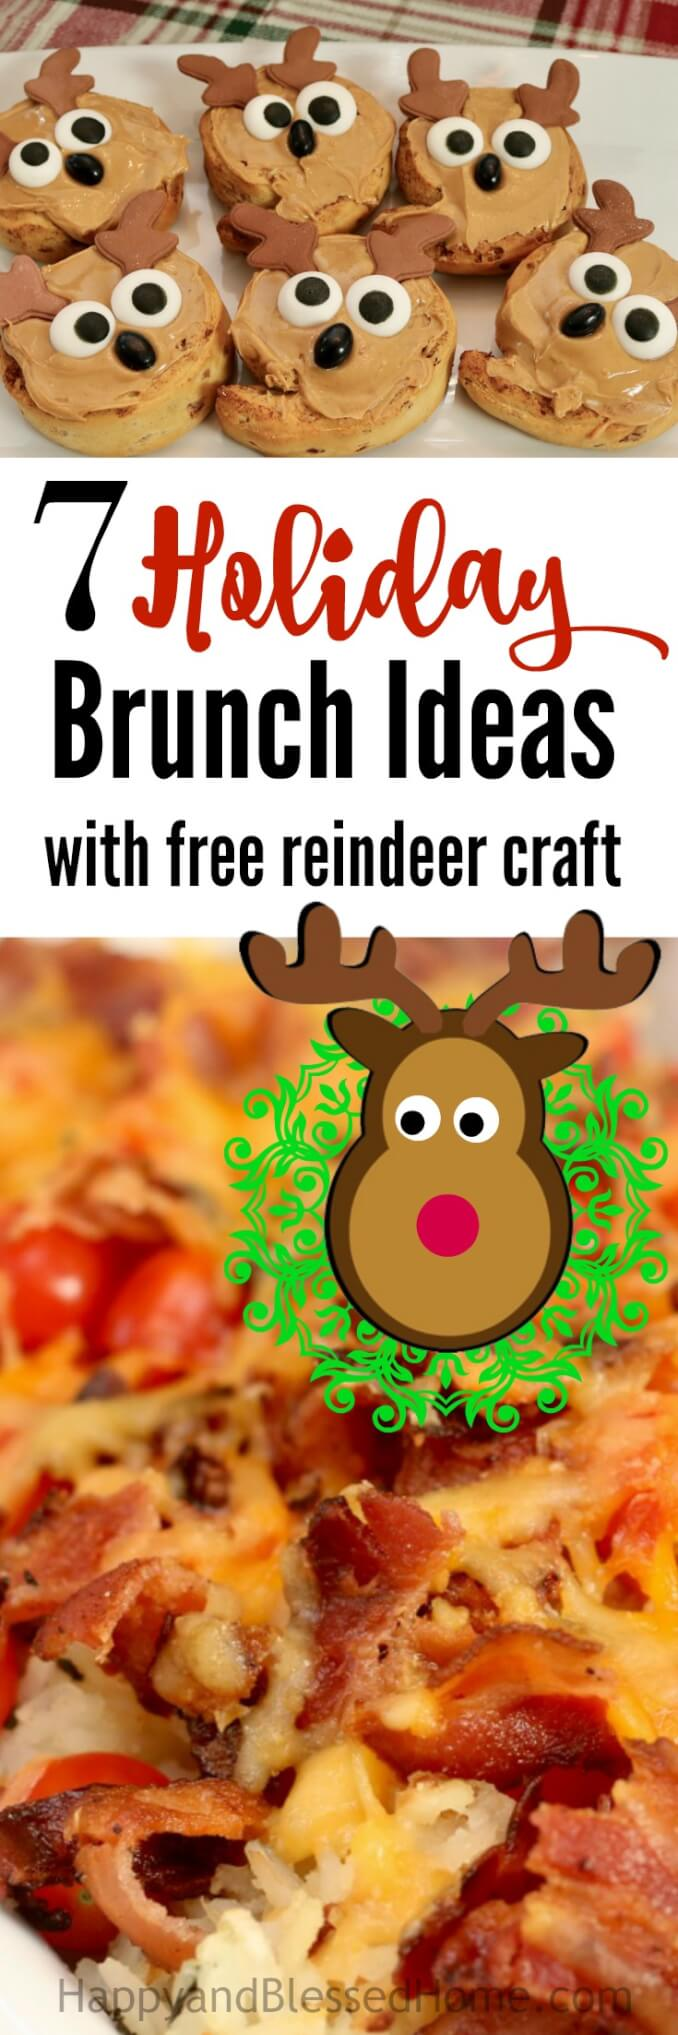 7 Holiday Brunch Ideas for Hosting a Brunch Party with a FREE Reindeer Craft Printable! Tips for a hearty breakfast that stays warm all morning long, family fun ideas, a walk down memory lane, and easy cleanup. Ad #SavorTheMemory with a holiday Brunch Party this year!